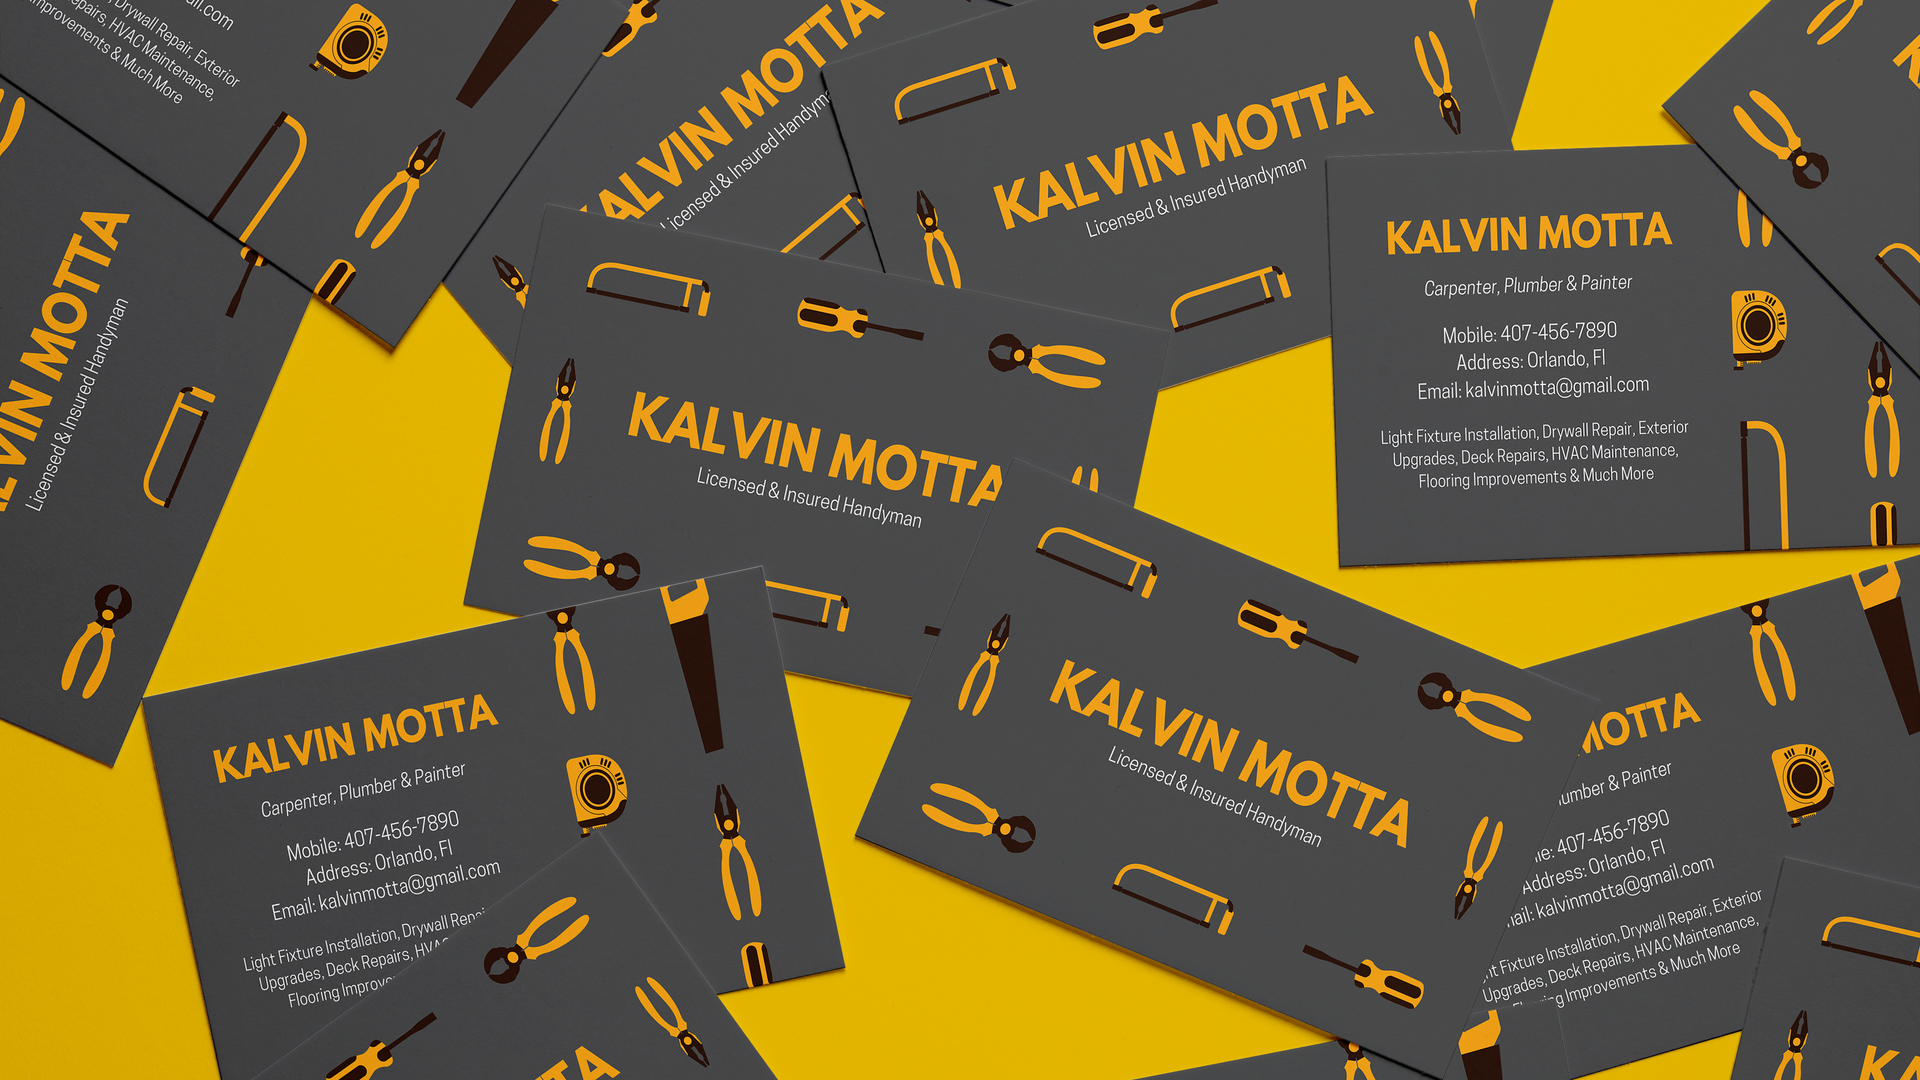 Kalvin Motta Business Card